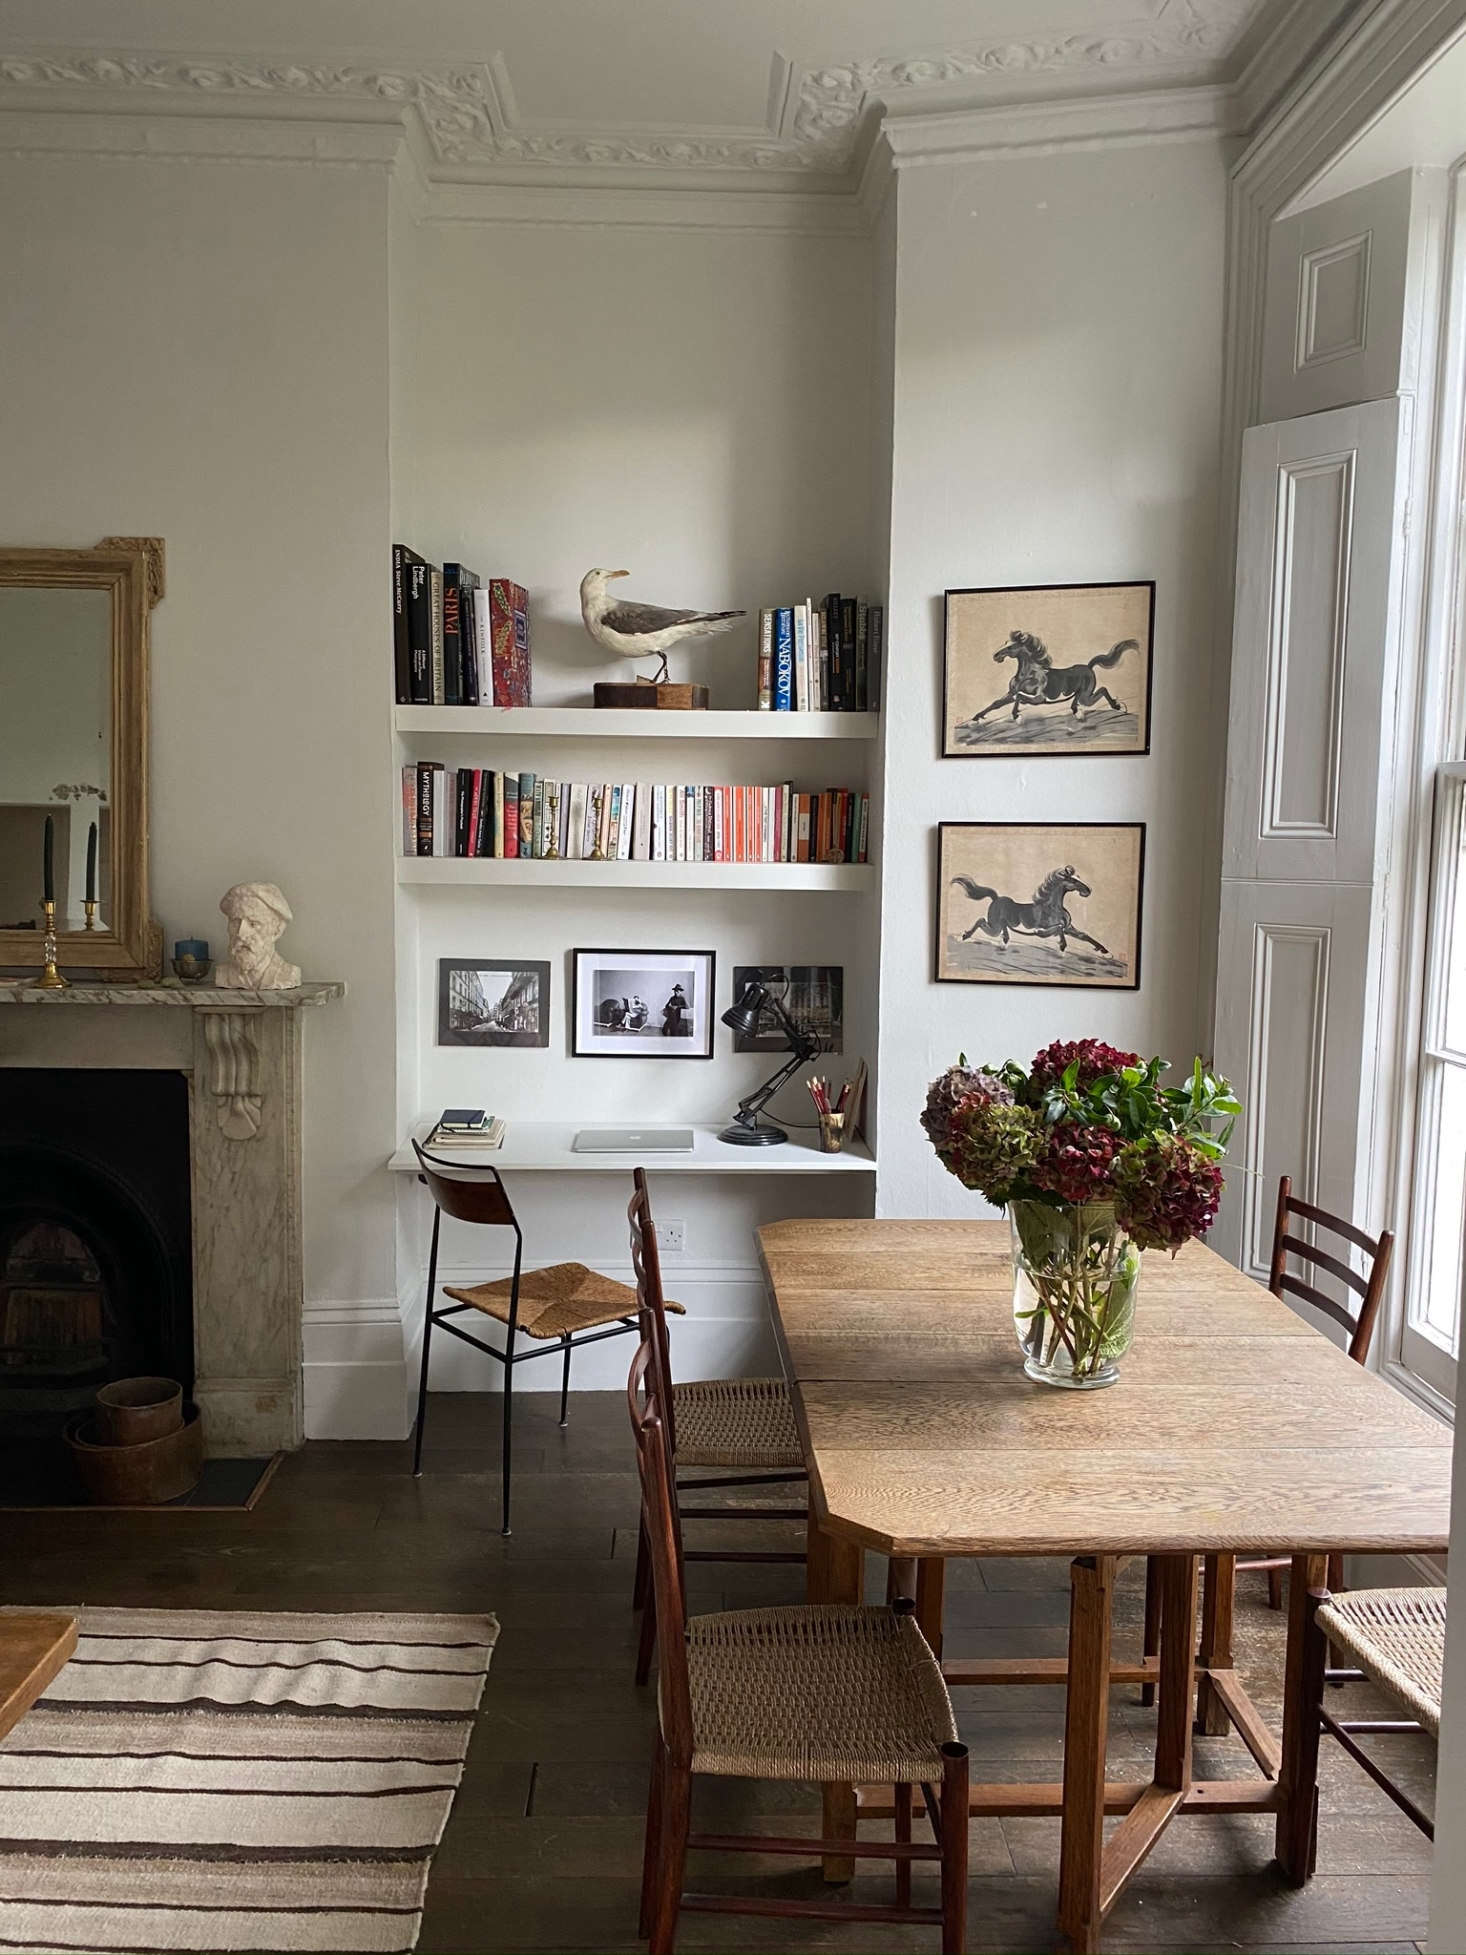 This small, bright London apartment feels like a sanctuary. Photograph by Georgie Stogdon, from Respect for the Old: In a Tiny London Flat, Antiques, Vintage Finds, and Charm to Spare.